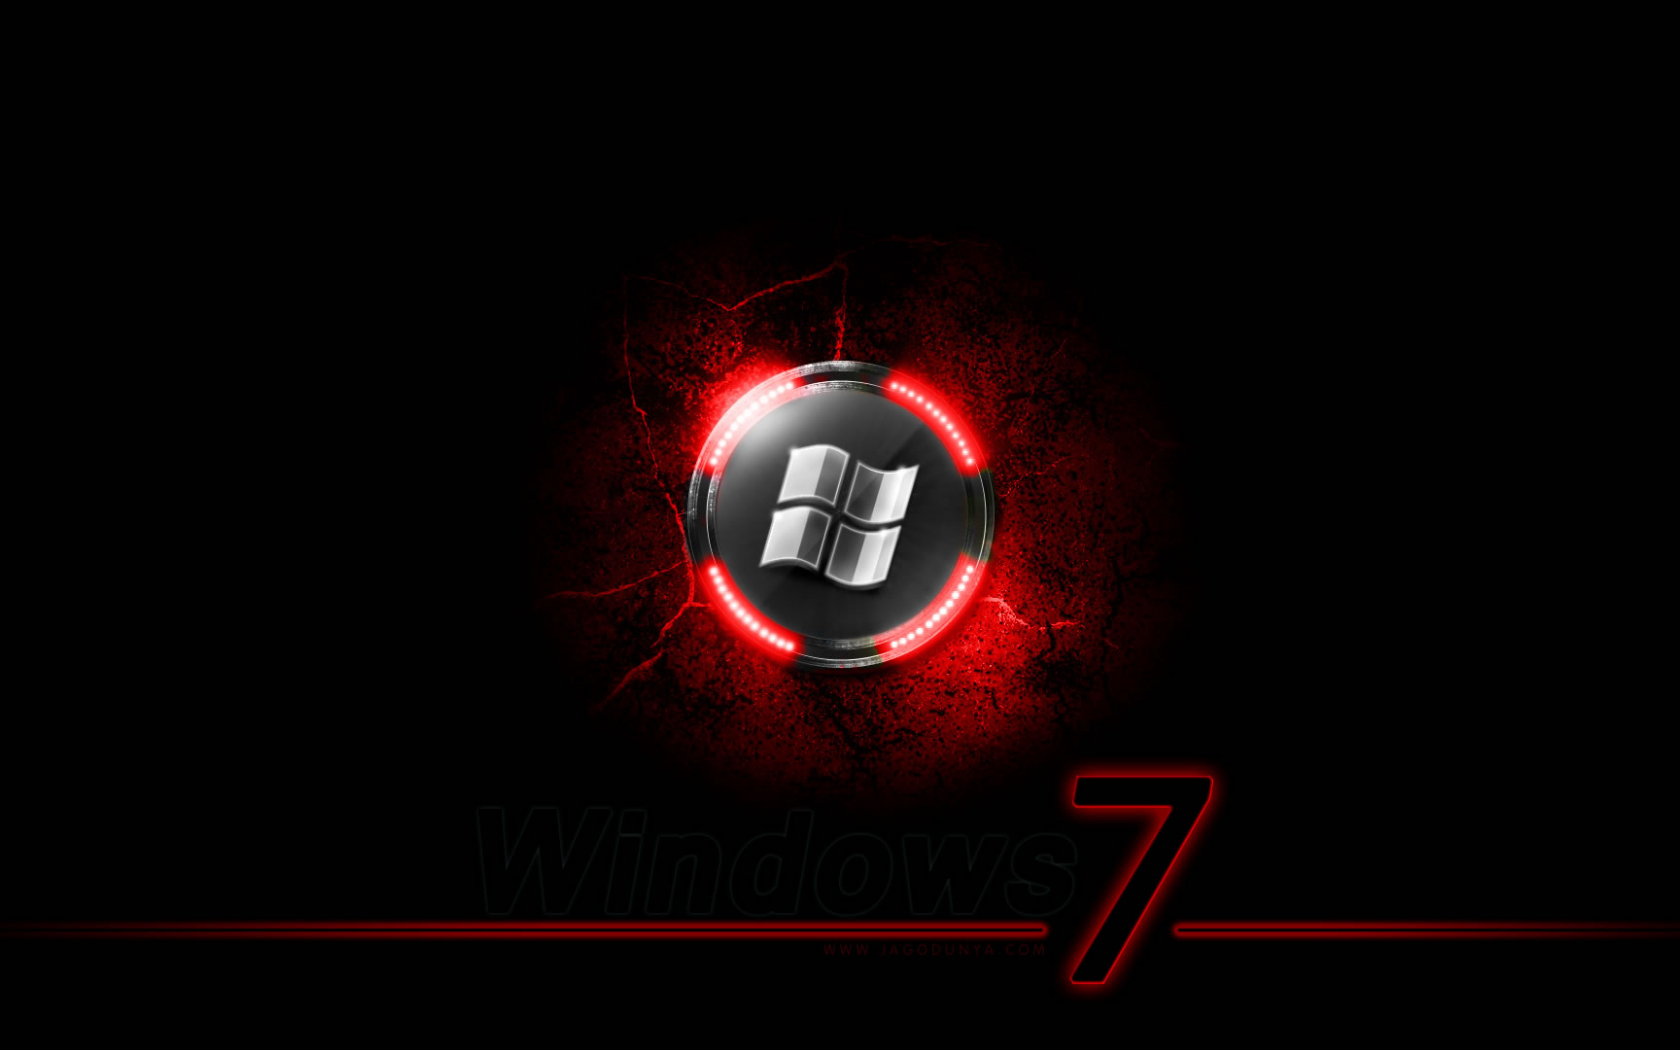 Free Download Black Windows 7 Hd Wallpapers 1920x1080 For Your